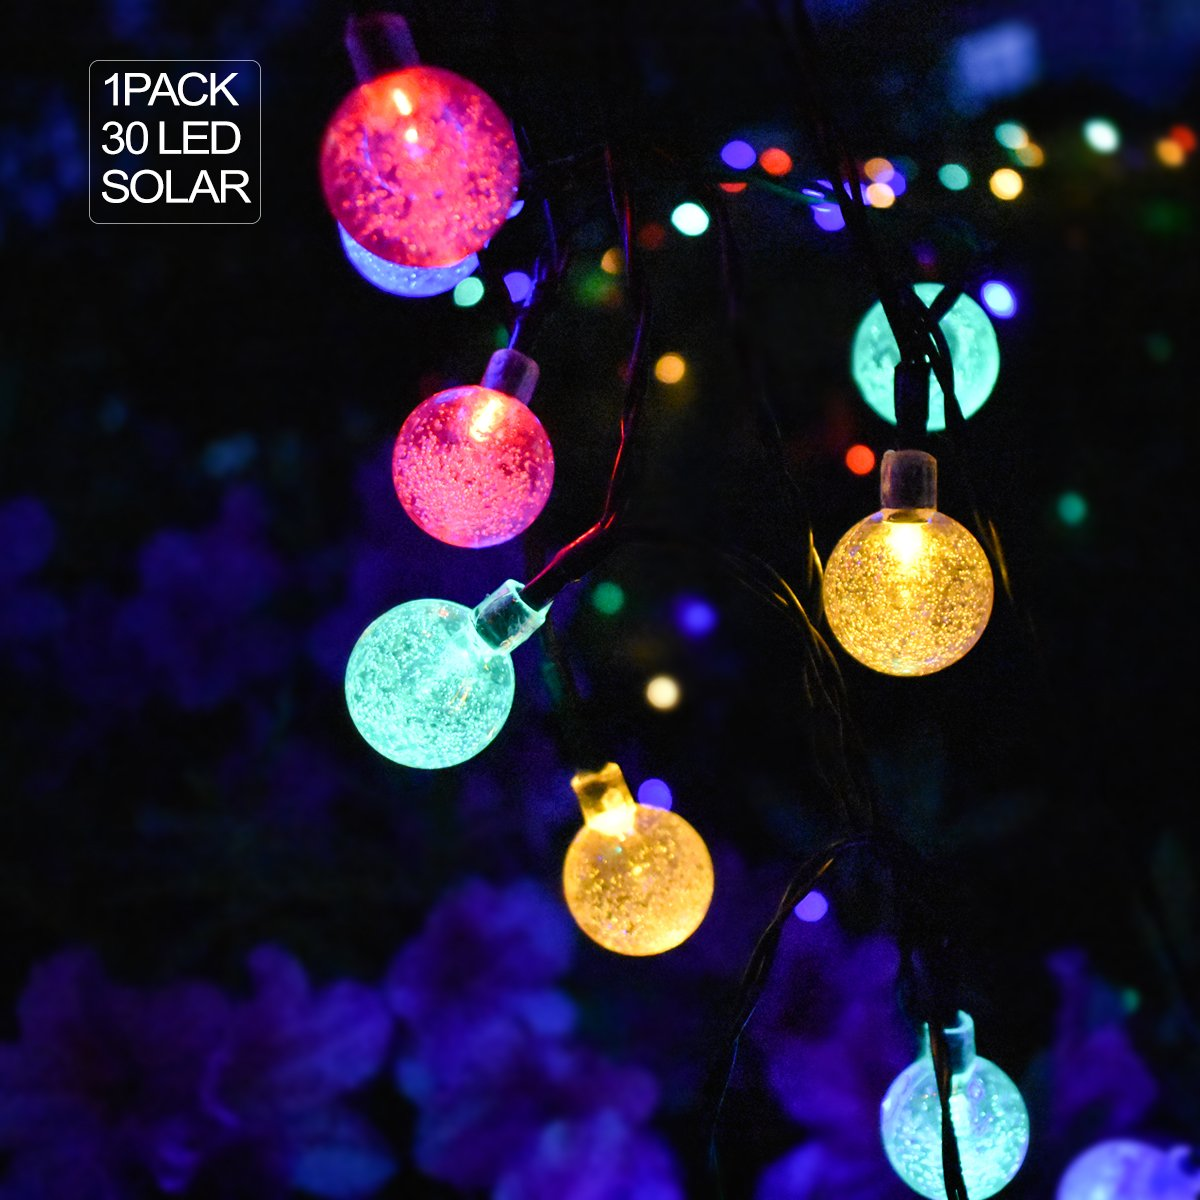 NIDENIONLED 30 Led Globe Solar String Lights Outdoor Indoor for Bedroom Patio Garden Wedding Christmas Tents Party Decor Multi-color 14 FT 1 Pack